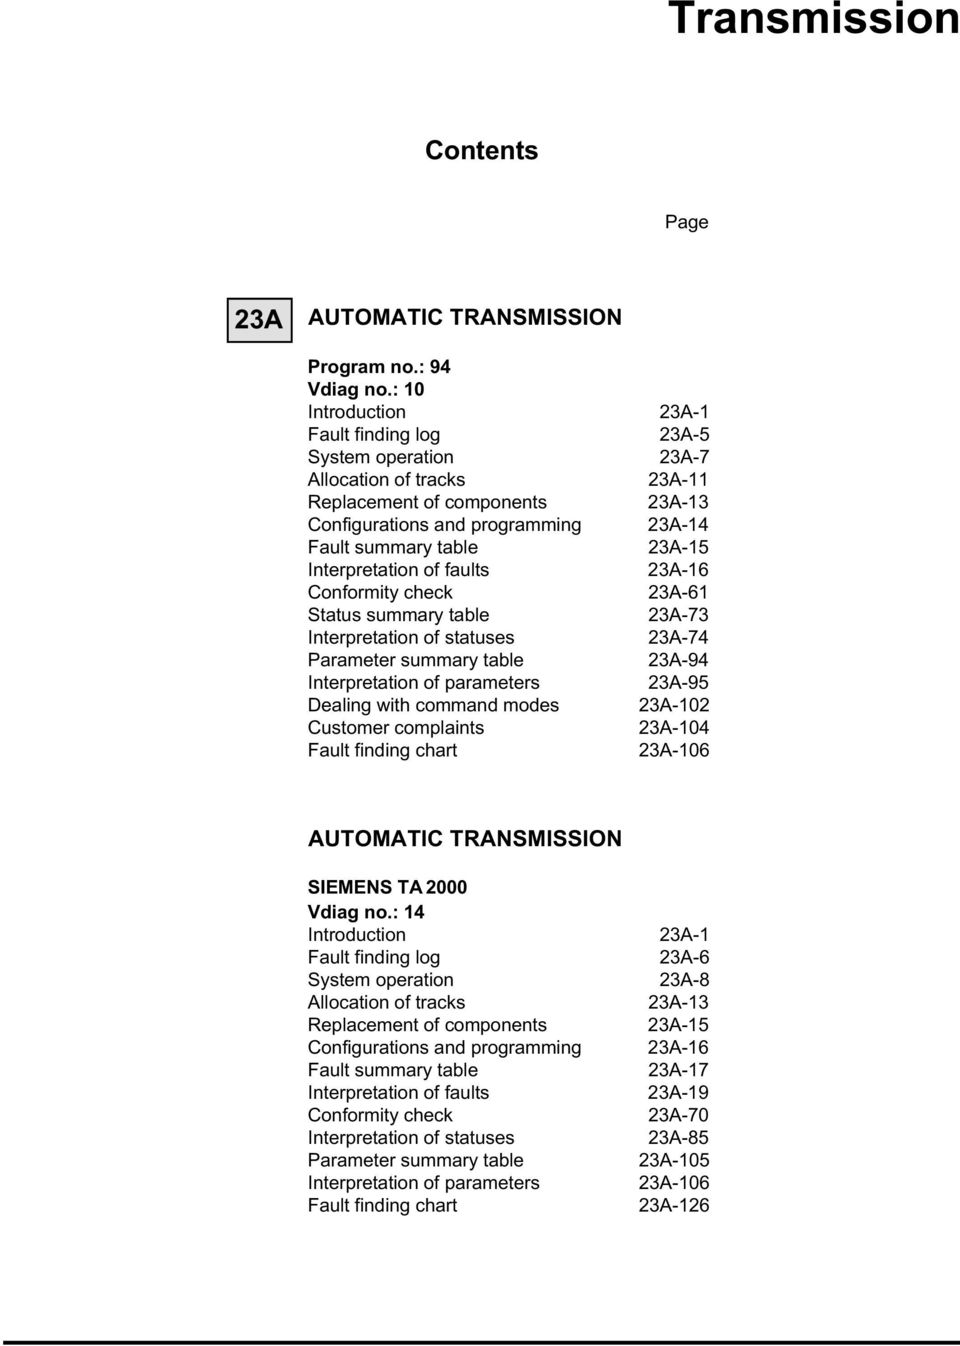 Transmission AUTOMATIC TRANSMISSION SEPTEMBER 2005 EDITION